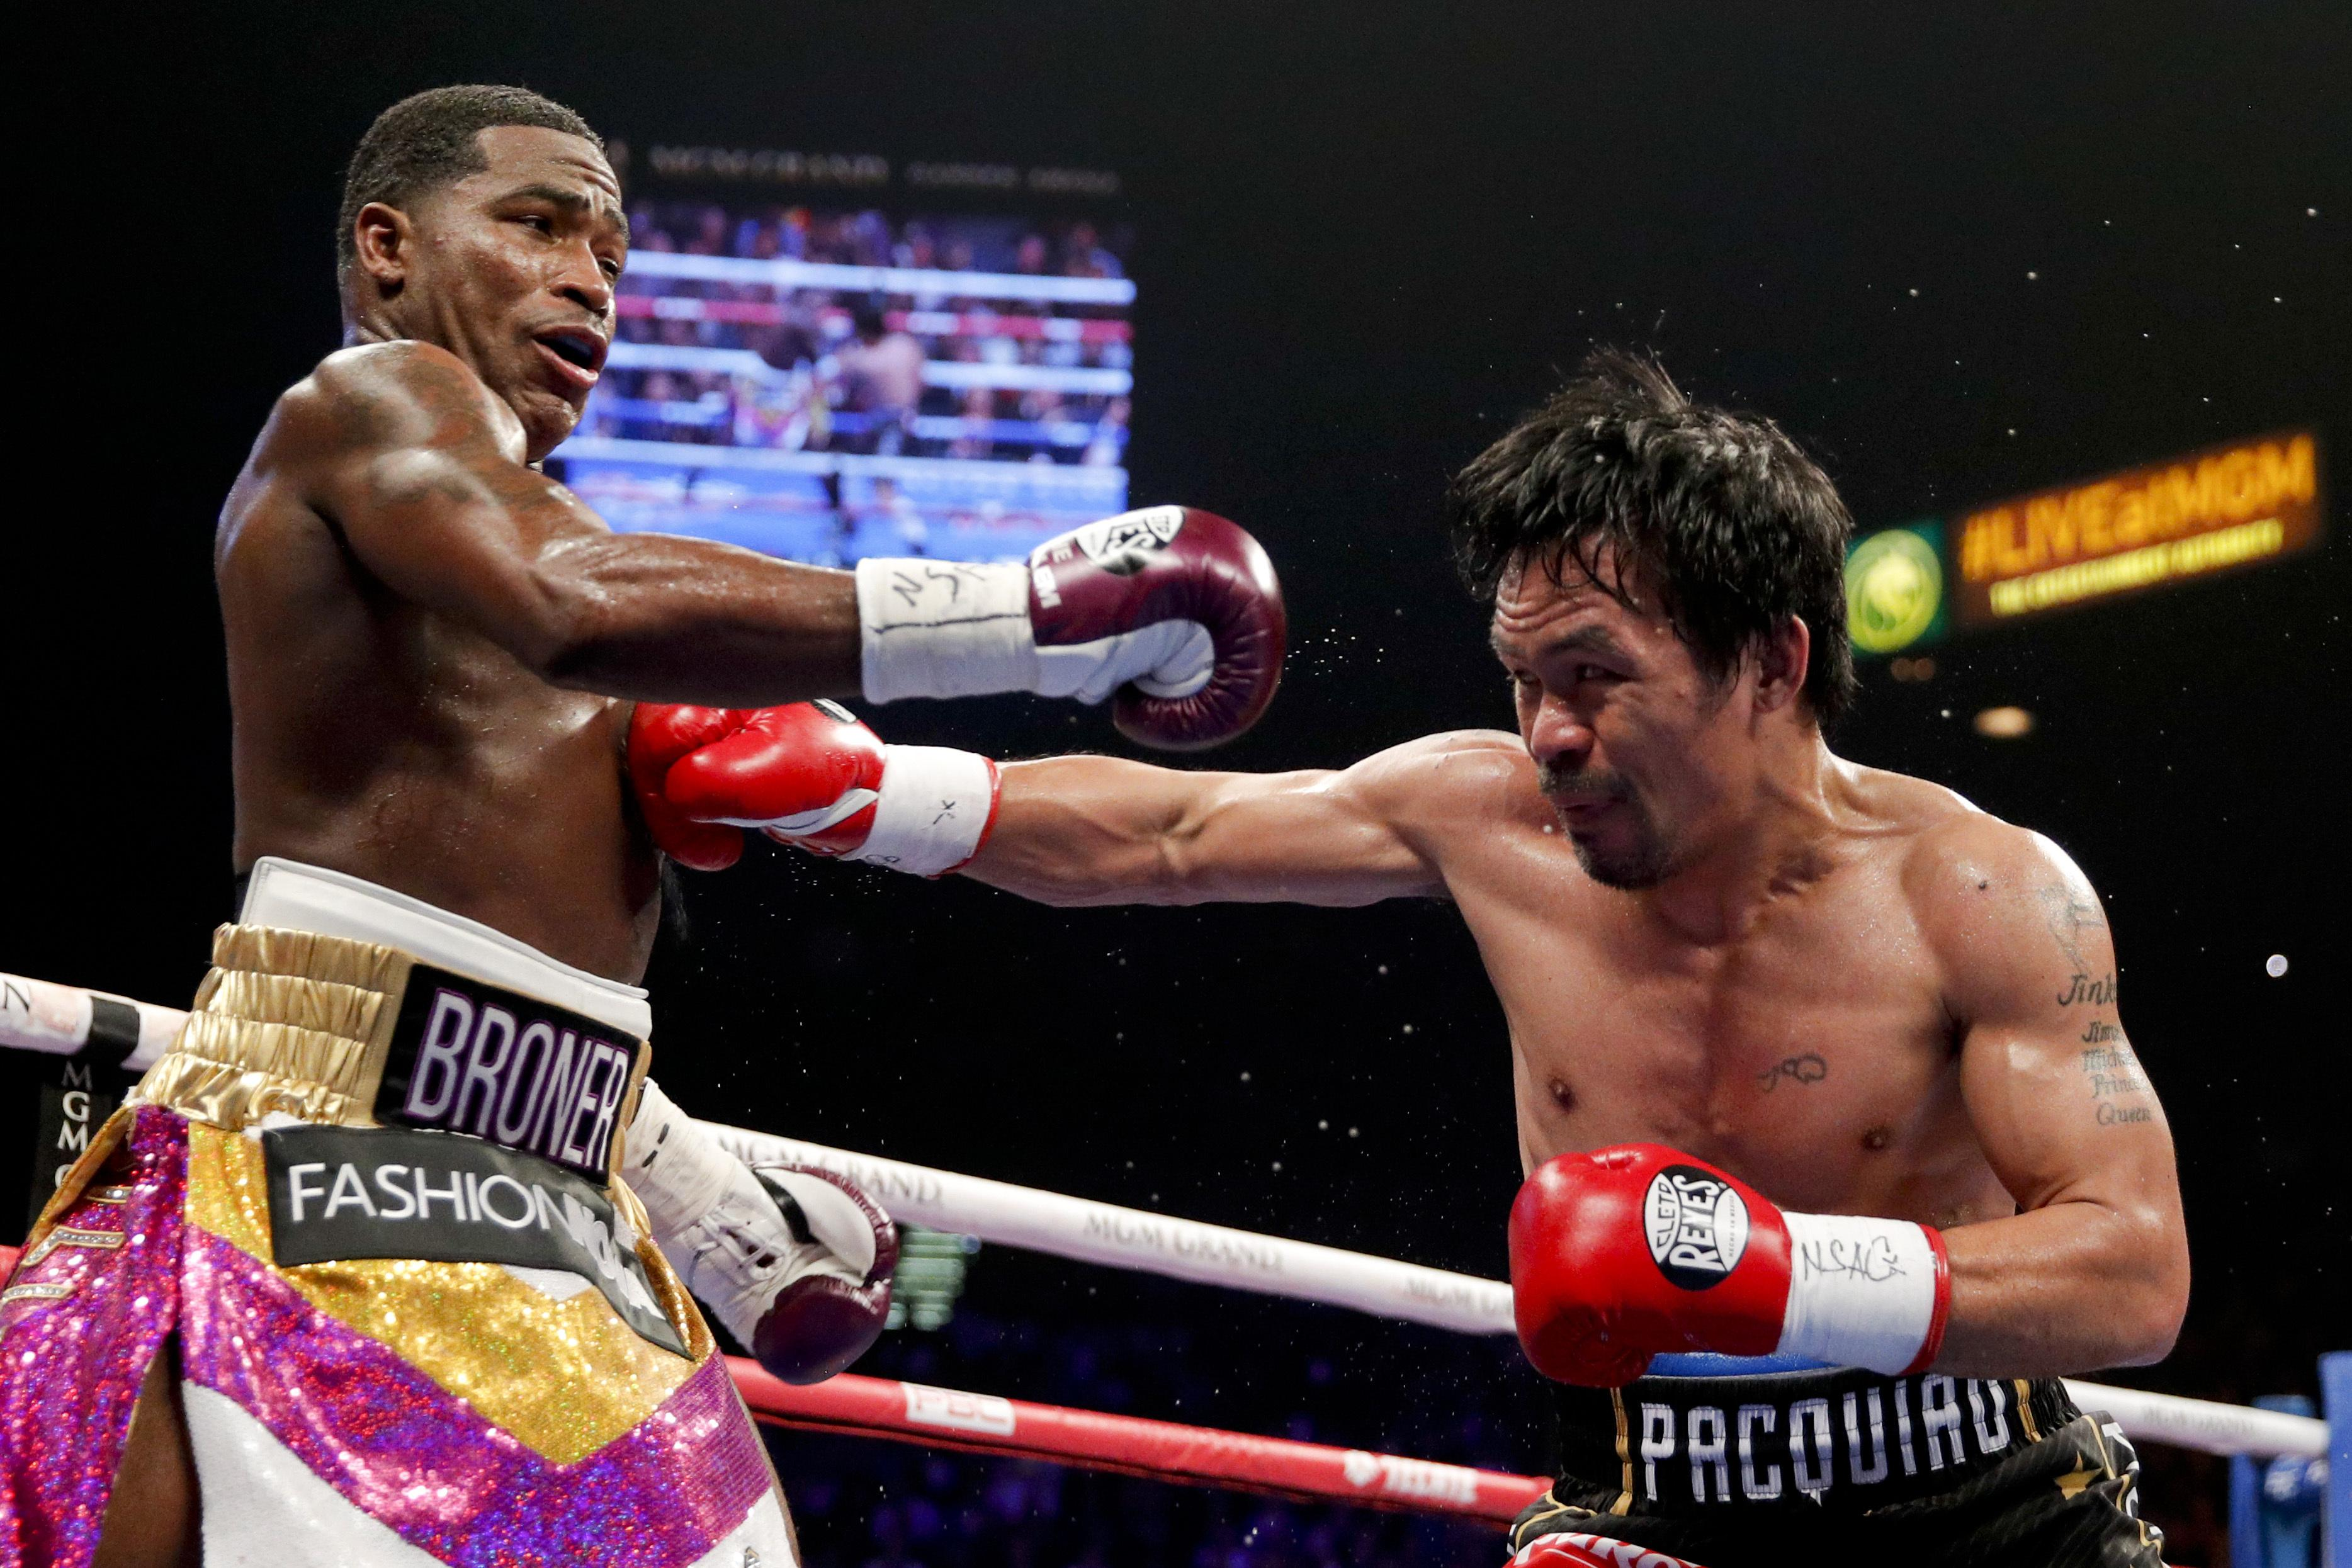 Pacquiao pressured Broner from the opening bell and got the win after 12 rounds